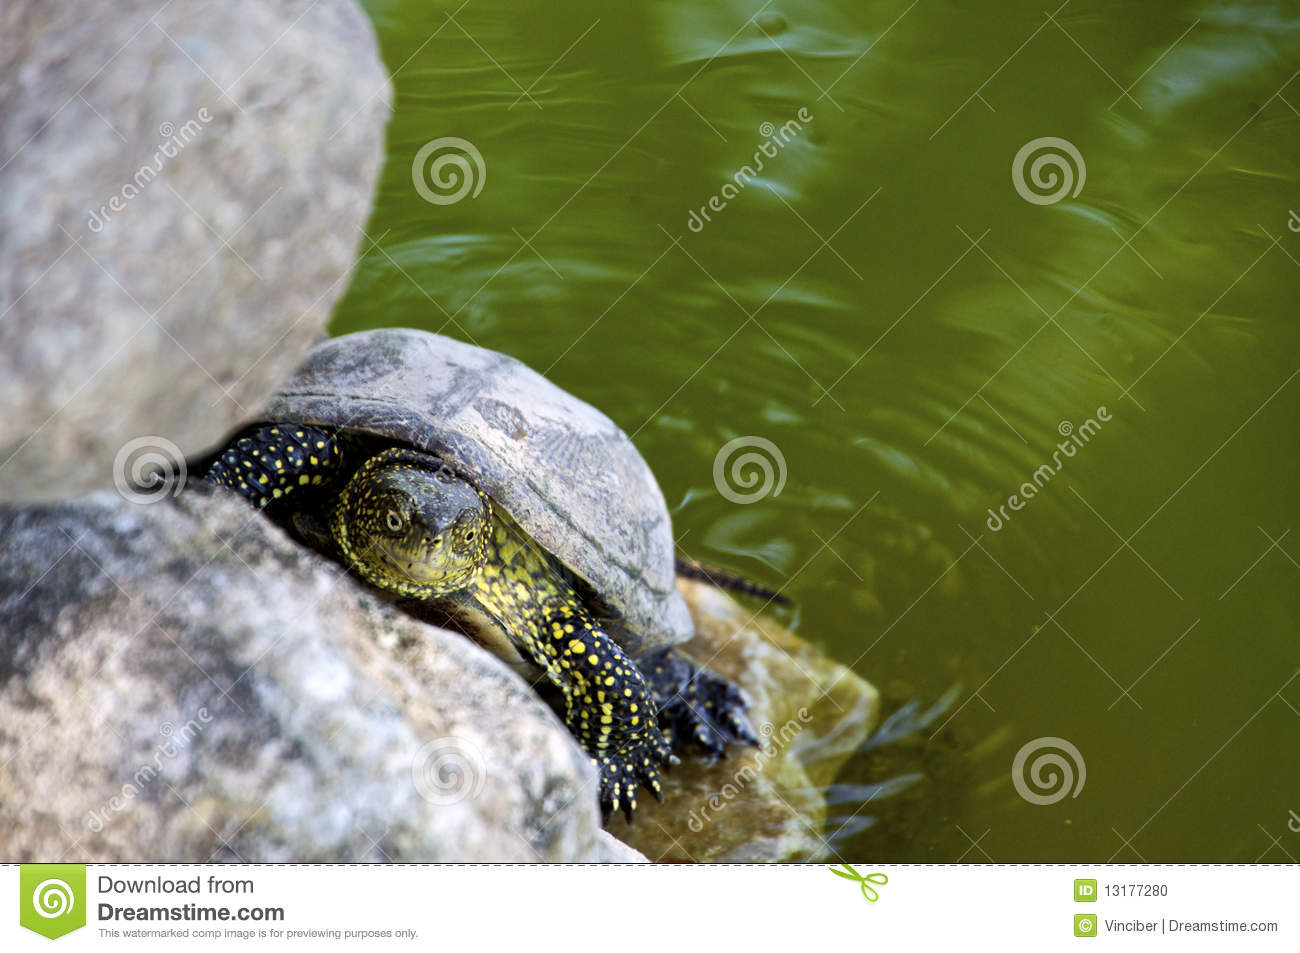 Aquatic Turtle Stock Photo - Image: 13177280